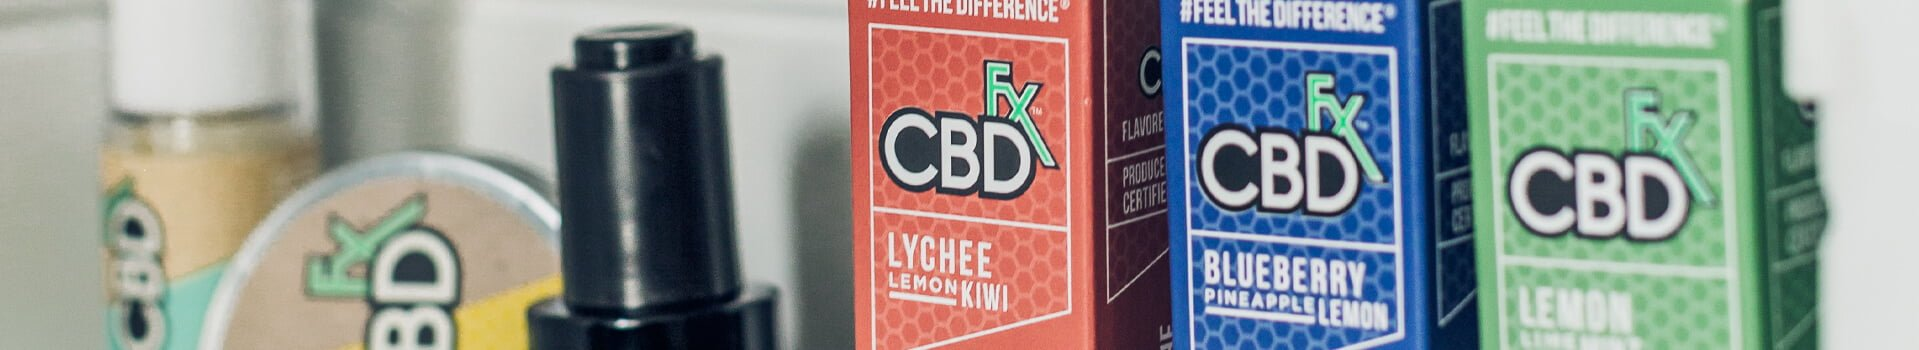 Is There A Best CBD Oil For Pain? The CBDfx Definitive Guide